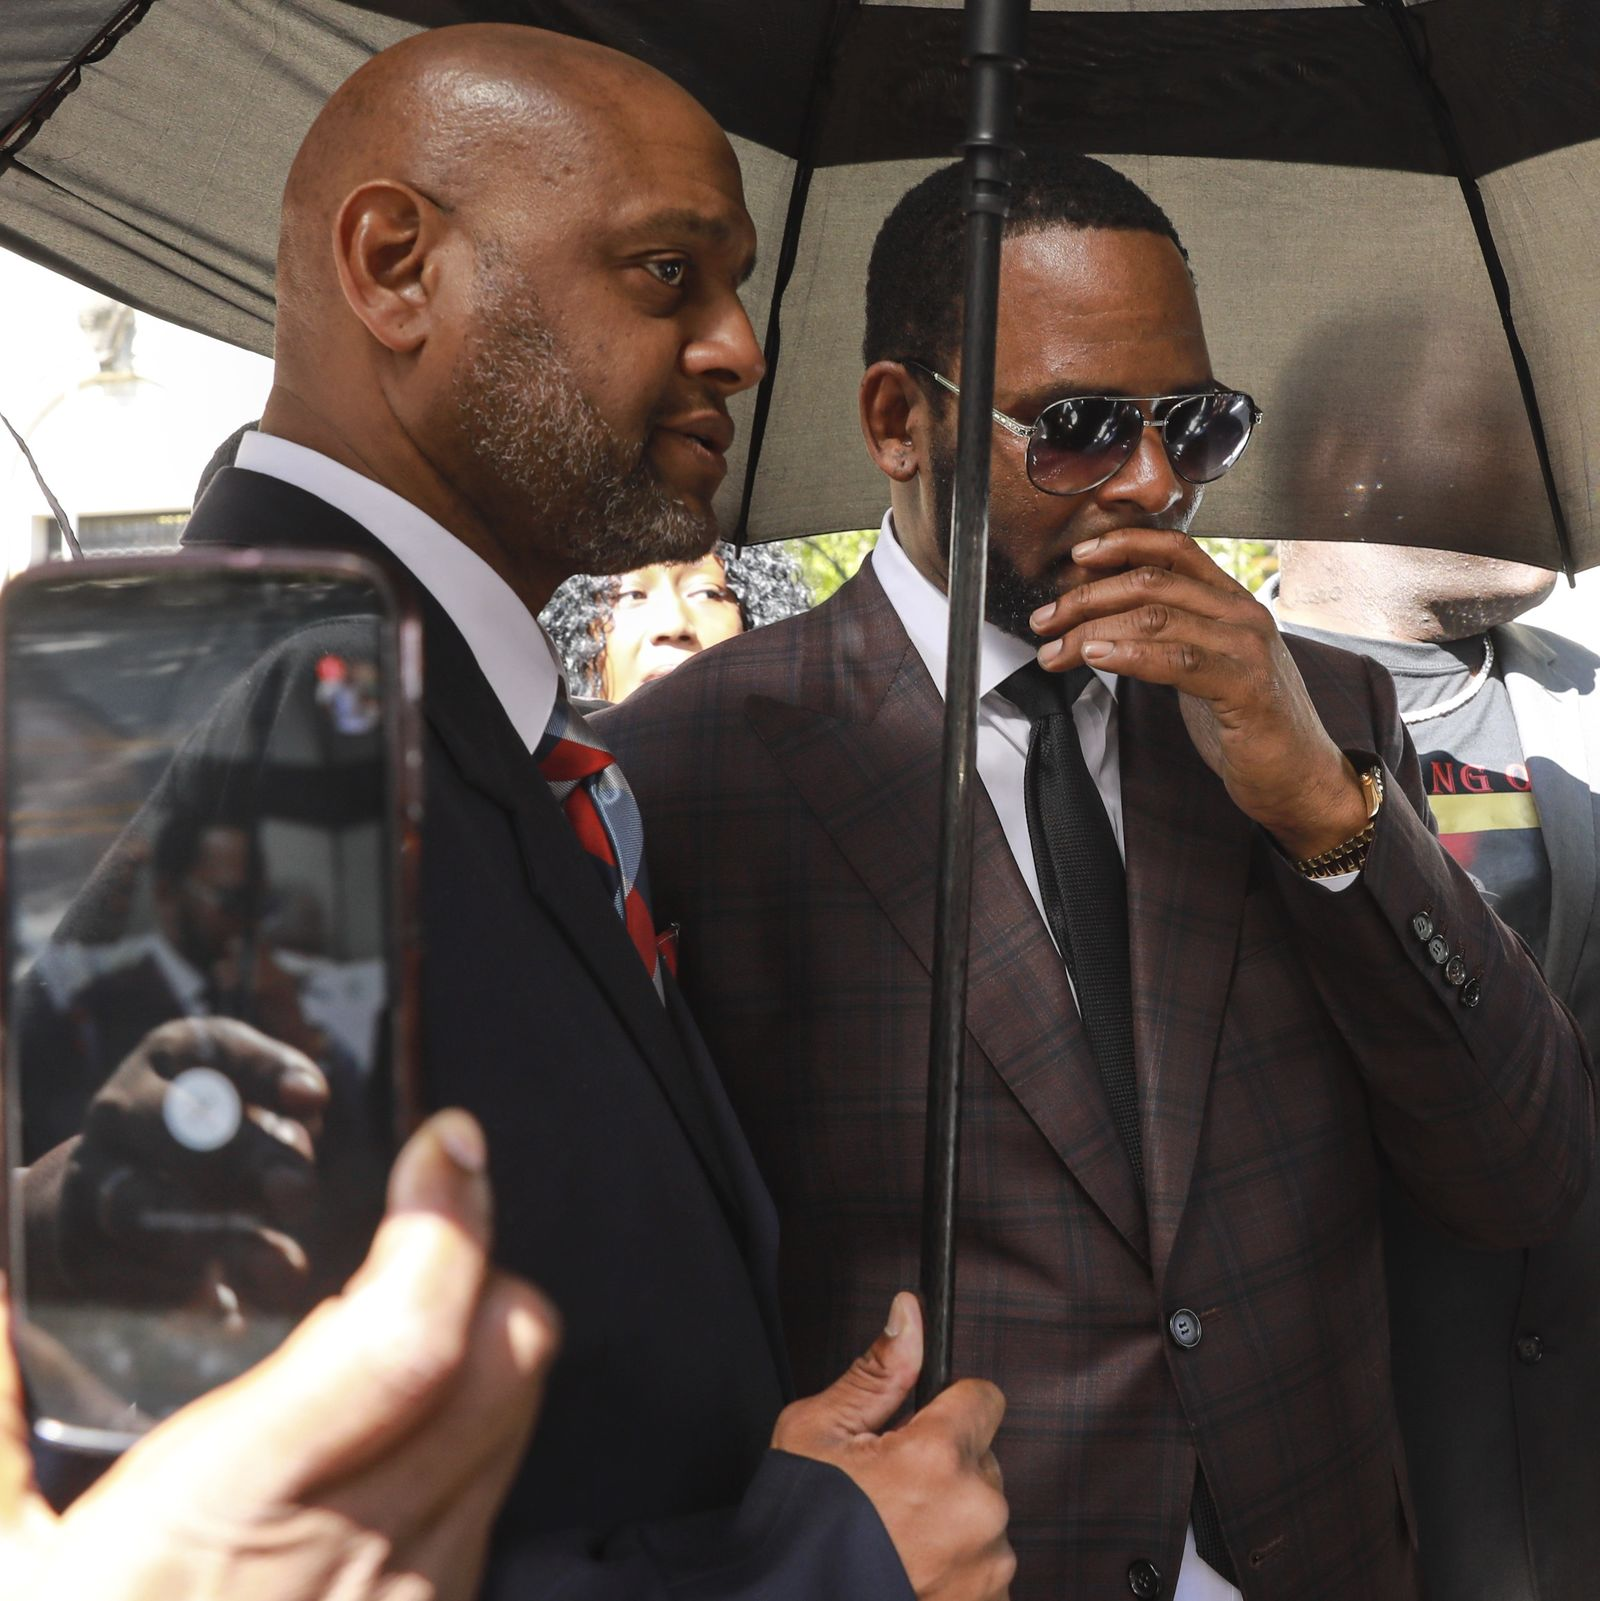 Musician R. Kelly, right, departs from the Leighton Criminal Court building after a status hearing in his criminal sexual abuse trial Wednesday, June 26, 2019 in Chicago. (AP Photo/Amr Alfiky)